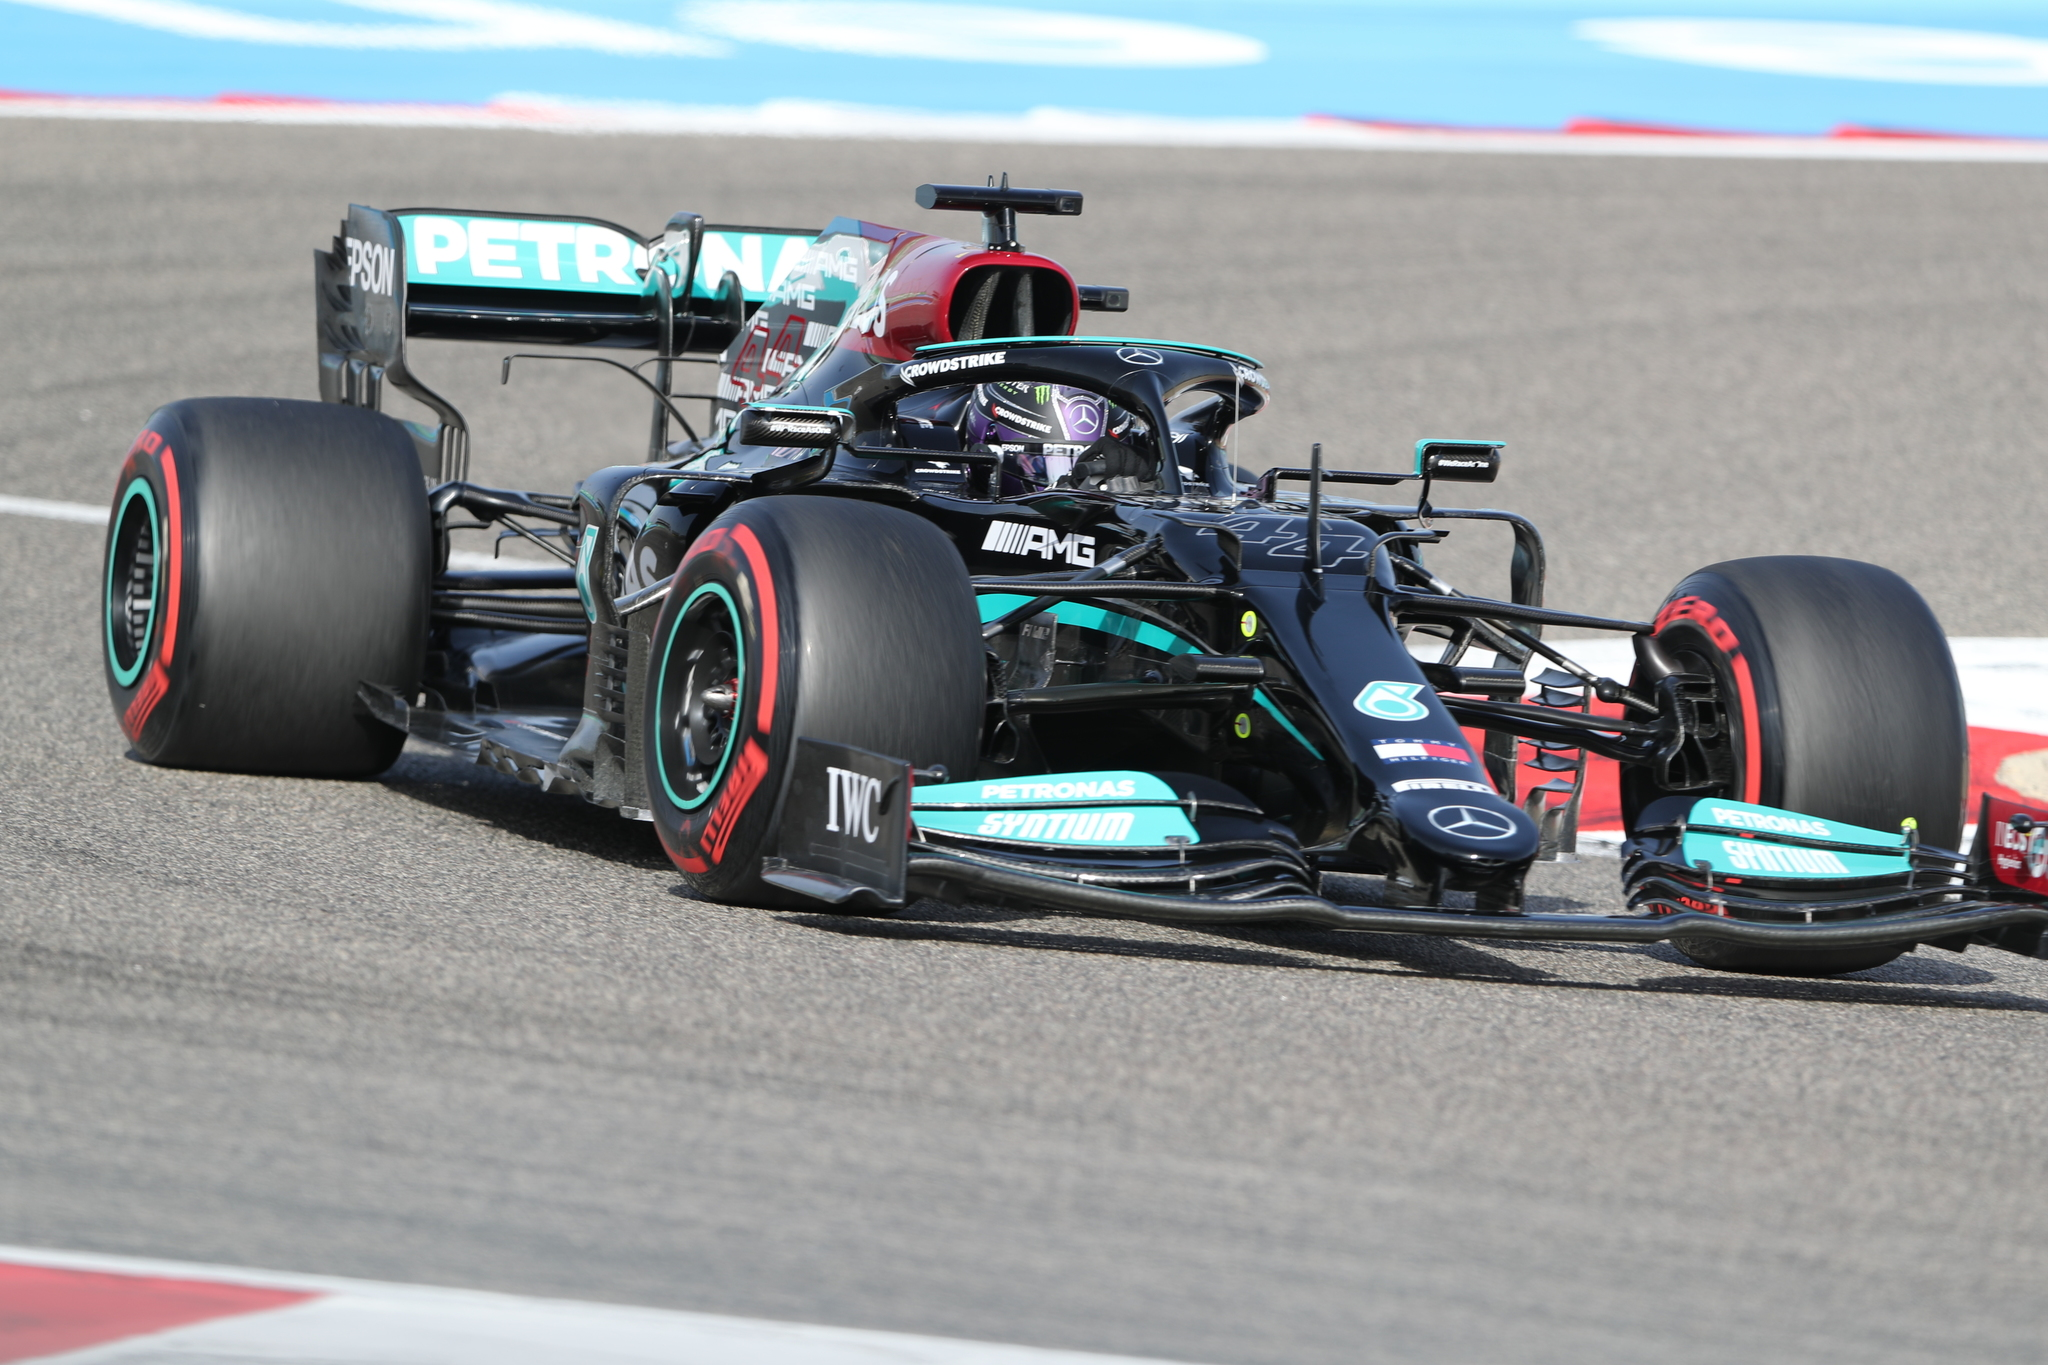 Mercedes driver Lewis lt;HIT gt;Hamilton lt;/HIT gt; of Britain steers his car during the third free practice at the Formula One Bahrain International Circuit in Sakhir, Bahrain, Saturday, March 27, 2021. The Bahrain Formula One Grand Prix will take place on Sunday. (AP Photo/Kamran Jebreili)